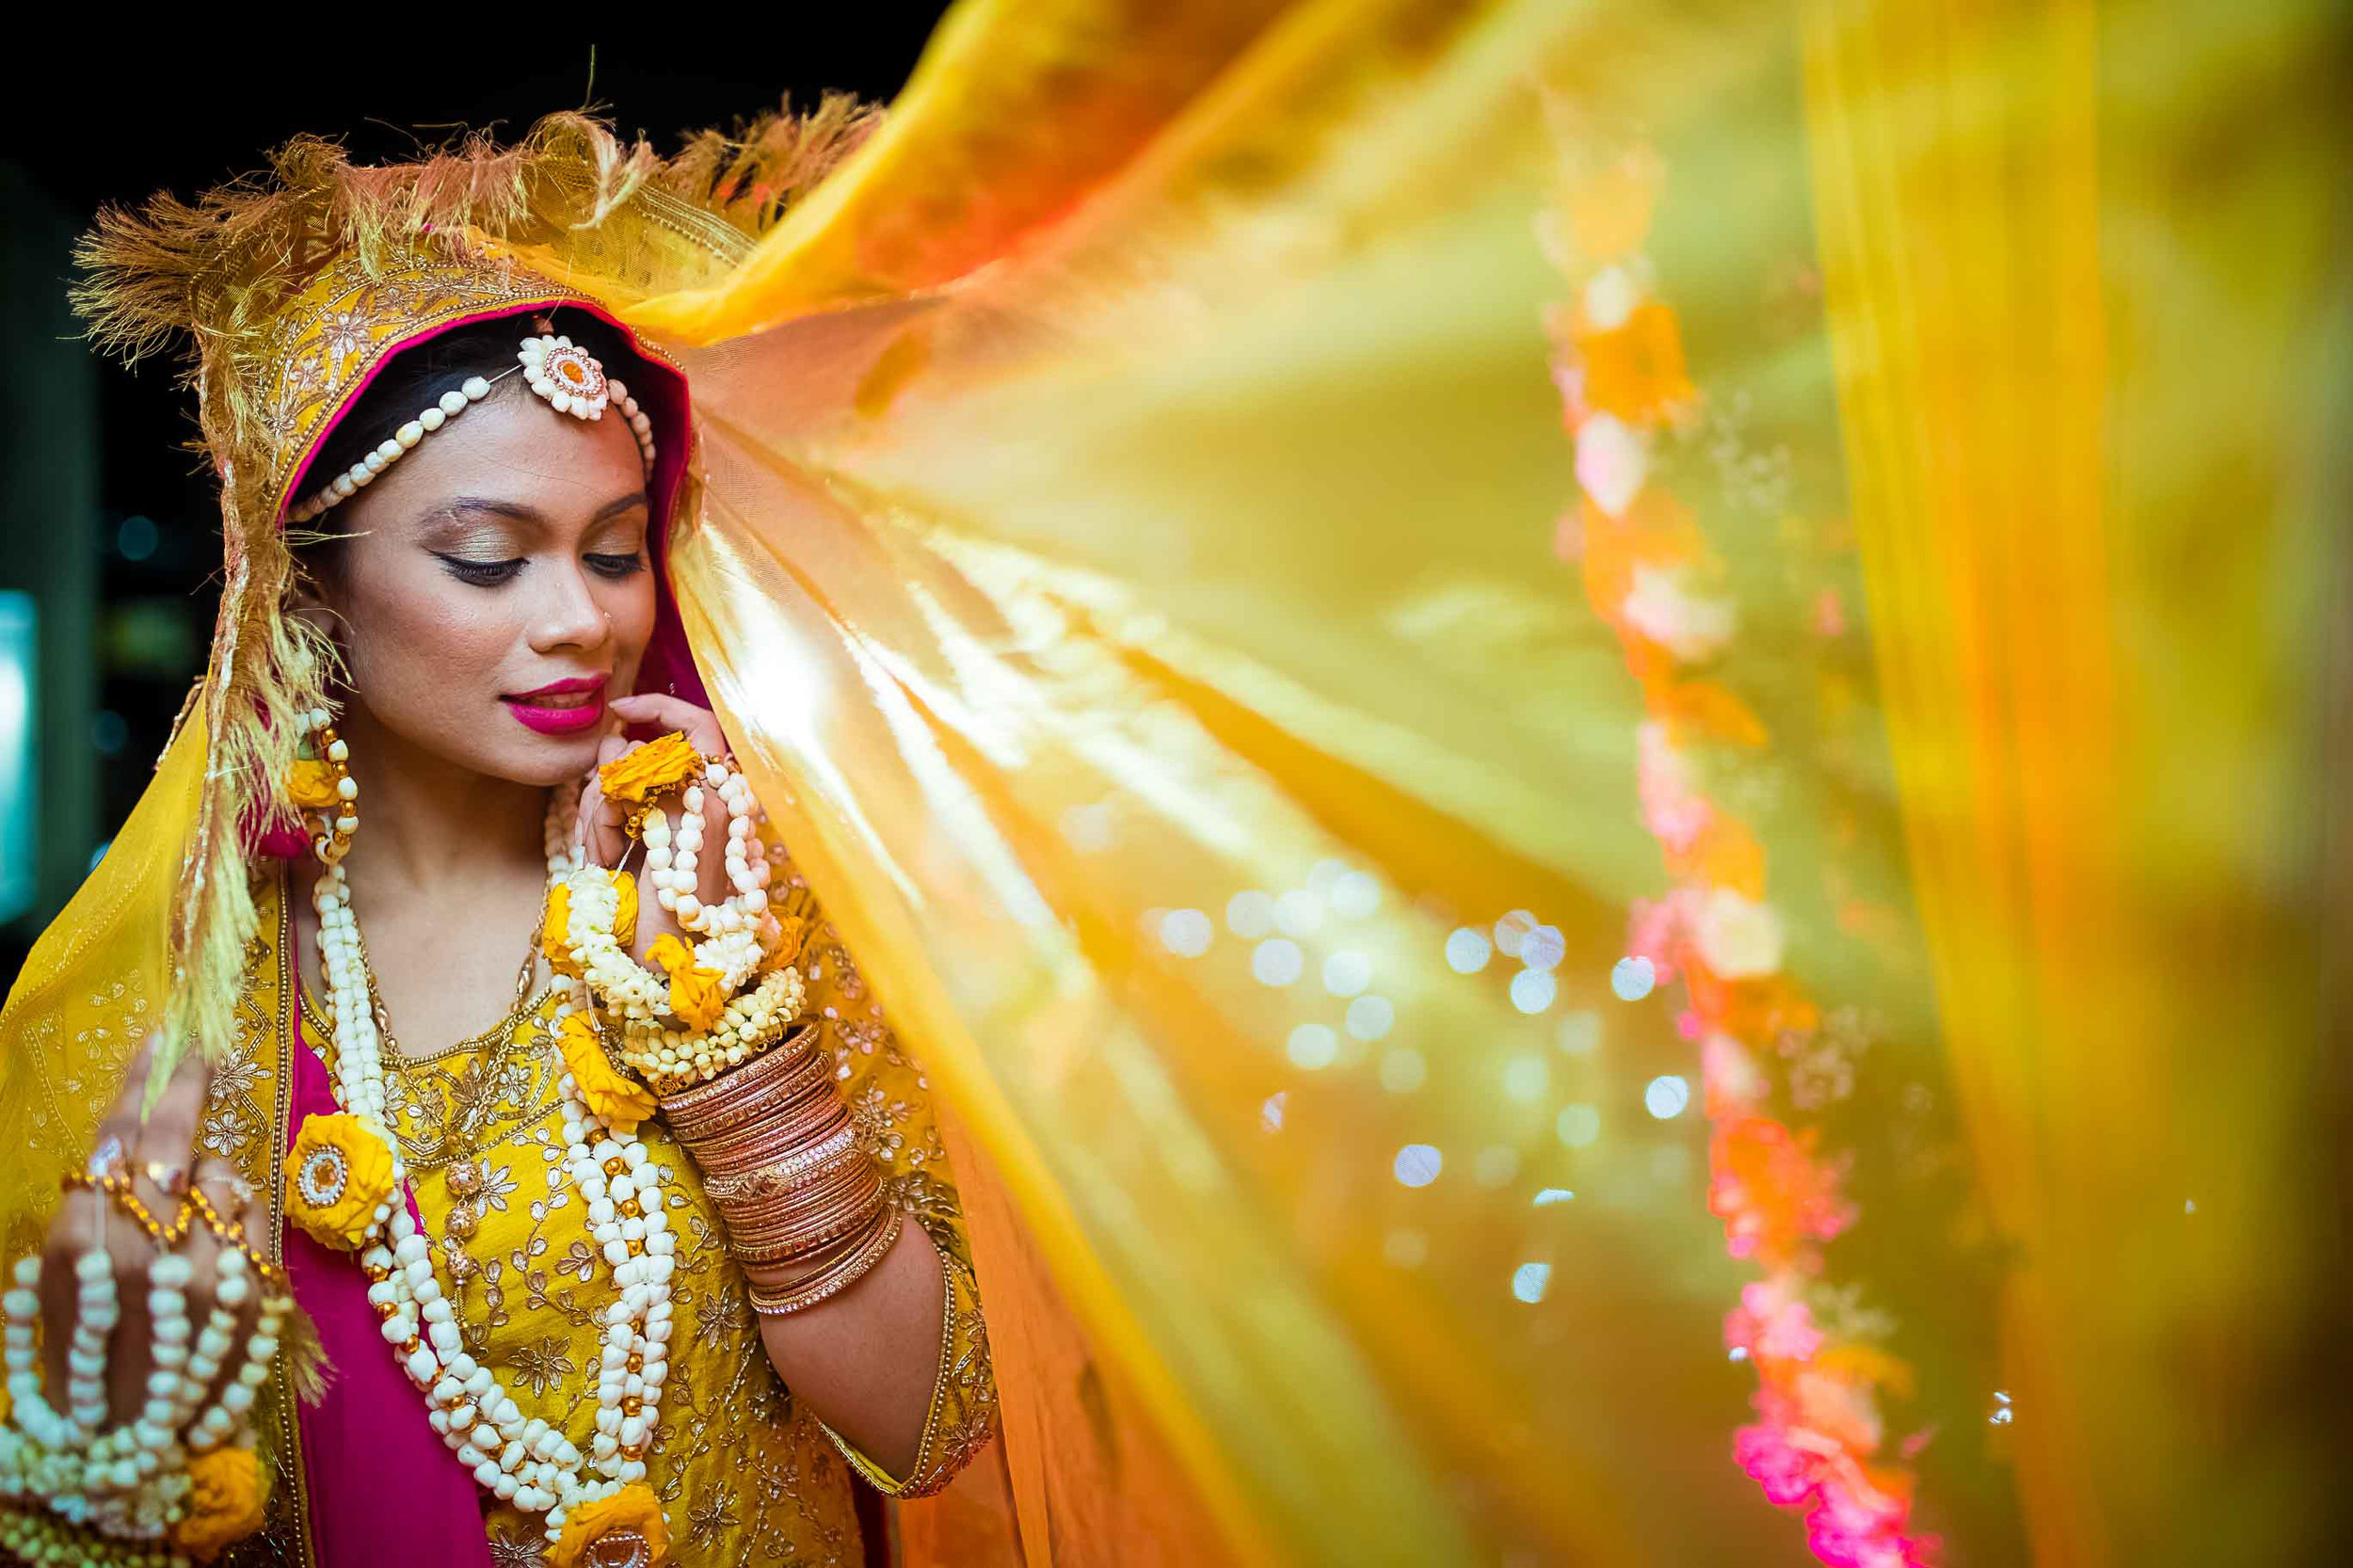 Pixel-Chronicles-Meraj-Yousuf-Candid-Wedding-Documentary-Photography-Haldi-Ceremony-Beautiful-Bride-Portrait-Muslim-Wedding-10.jpg